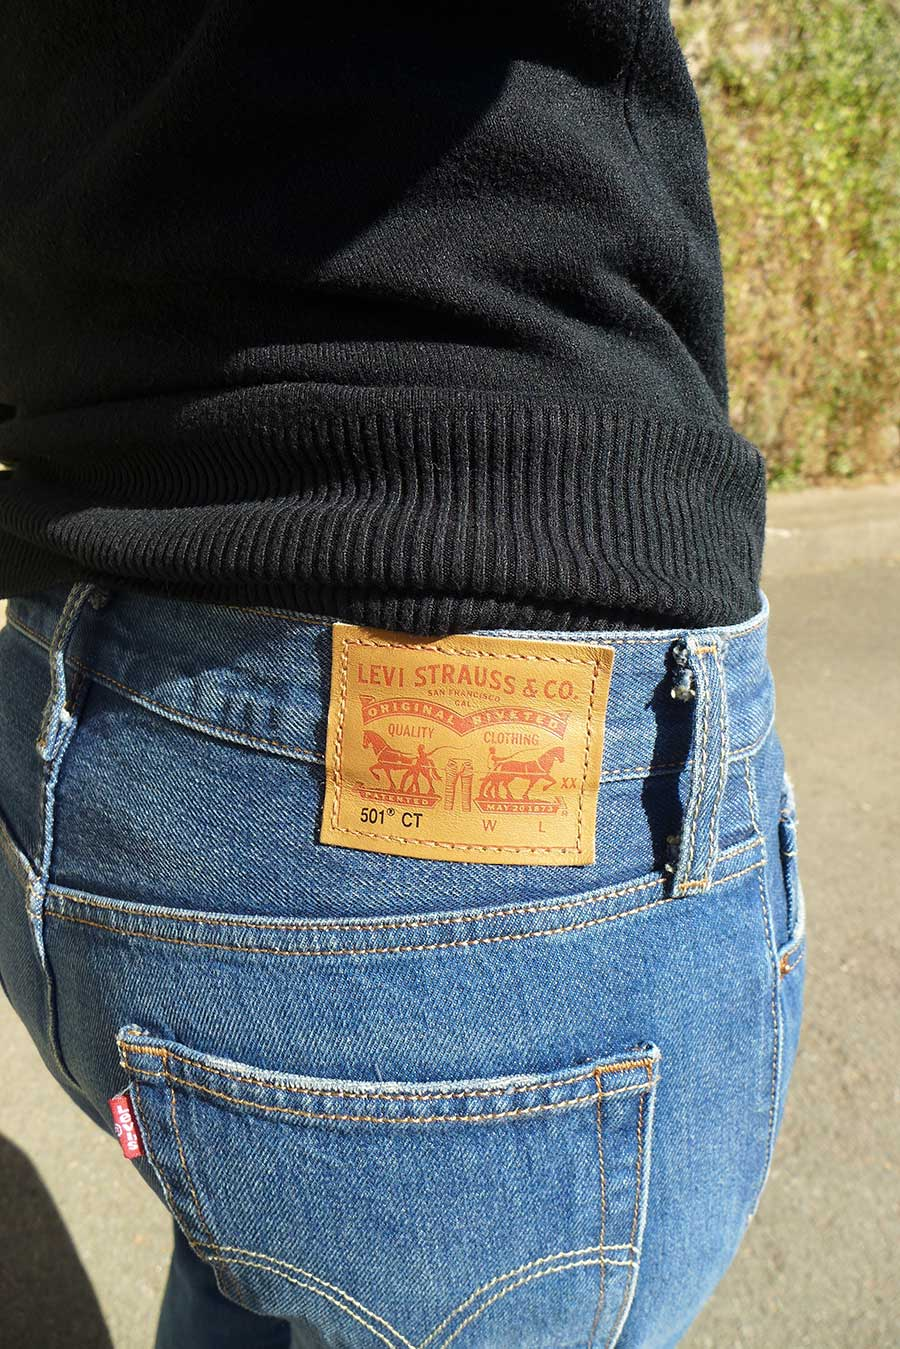 levi strauss & co 501 CT for women